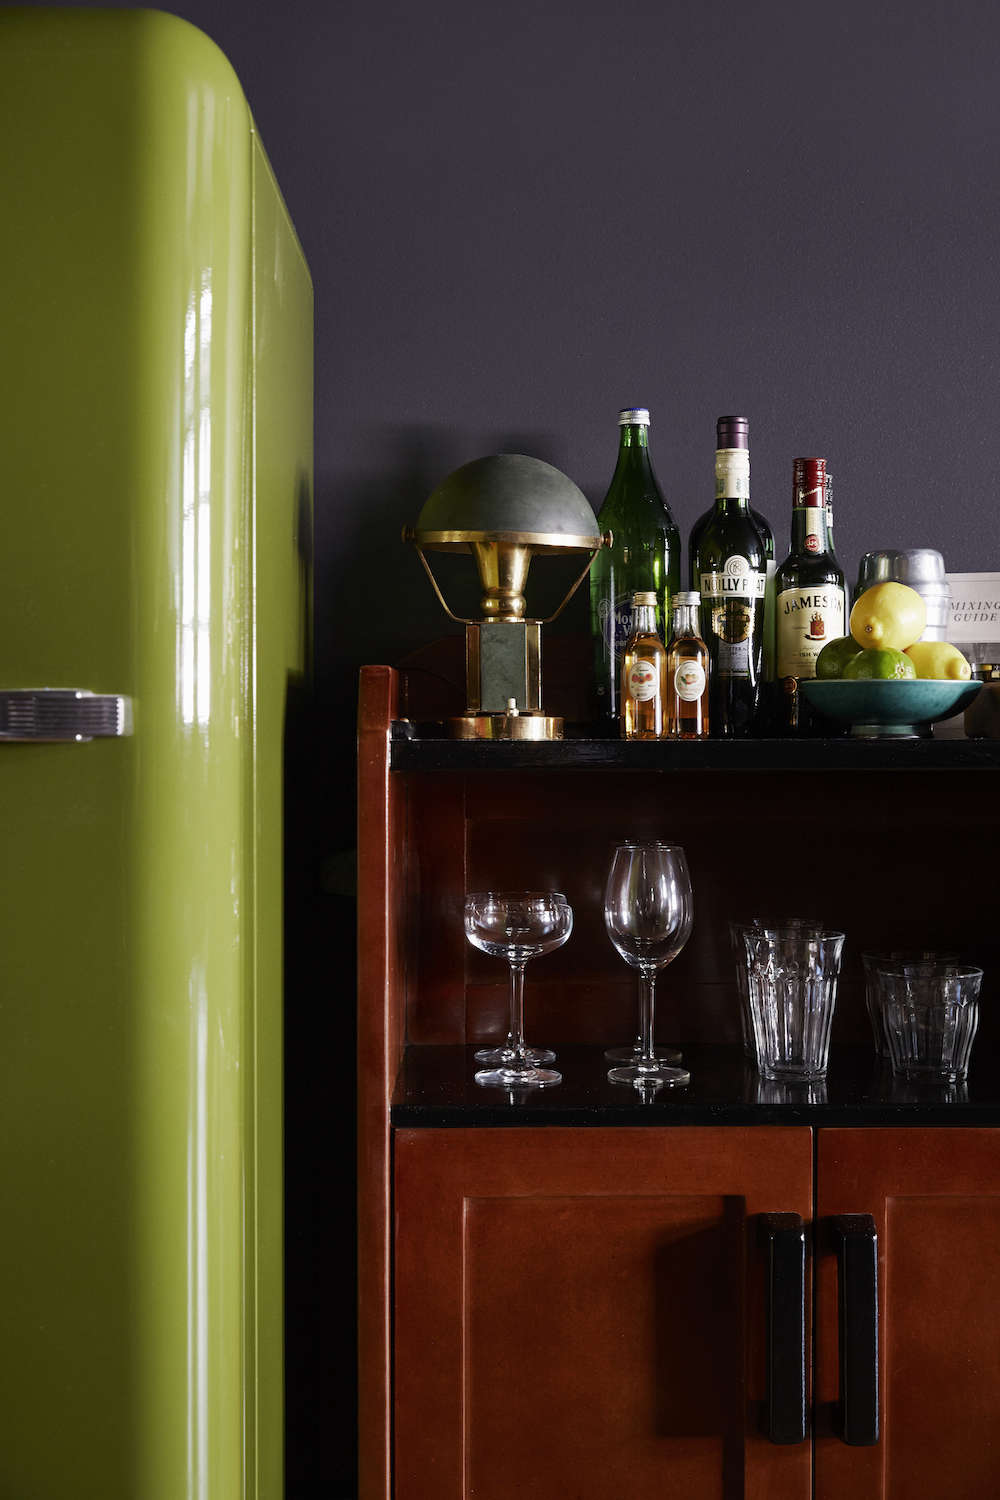 The Smeg refrigerator ina custom green color is stocked with freshcocktail essentials.